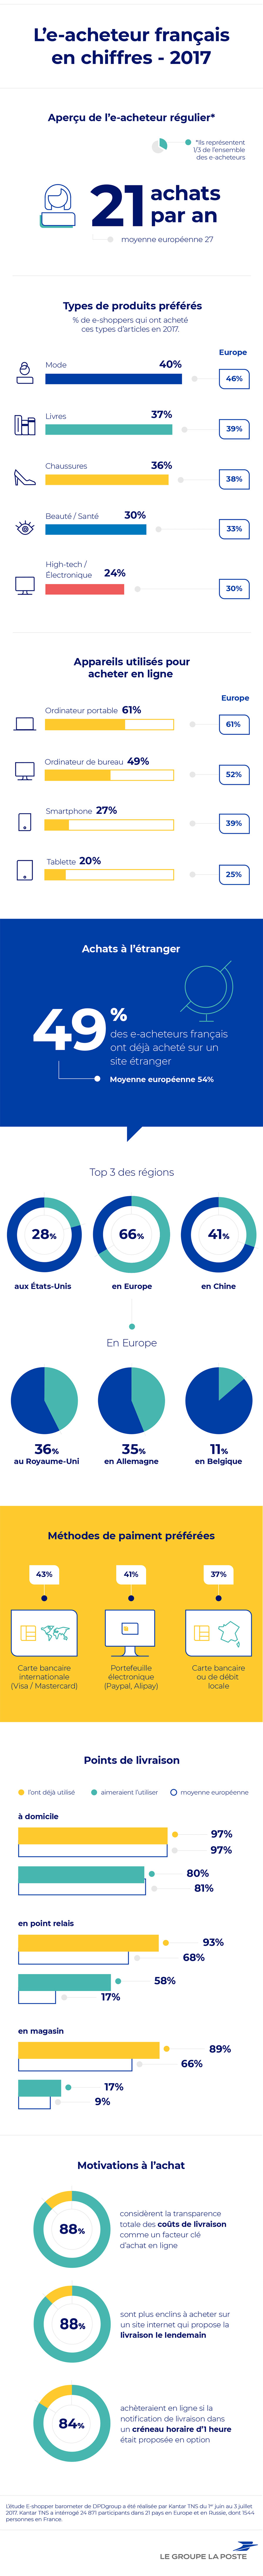 Infographic: buying behavior of the French e-shopper